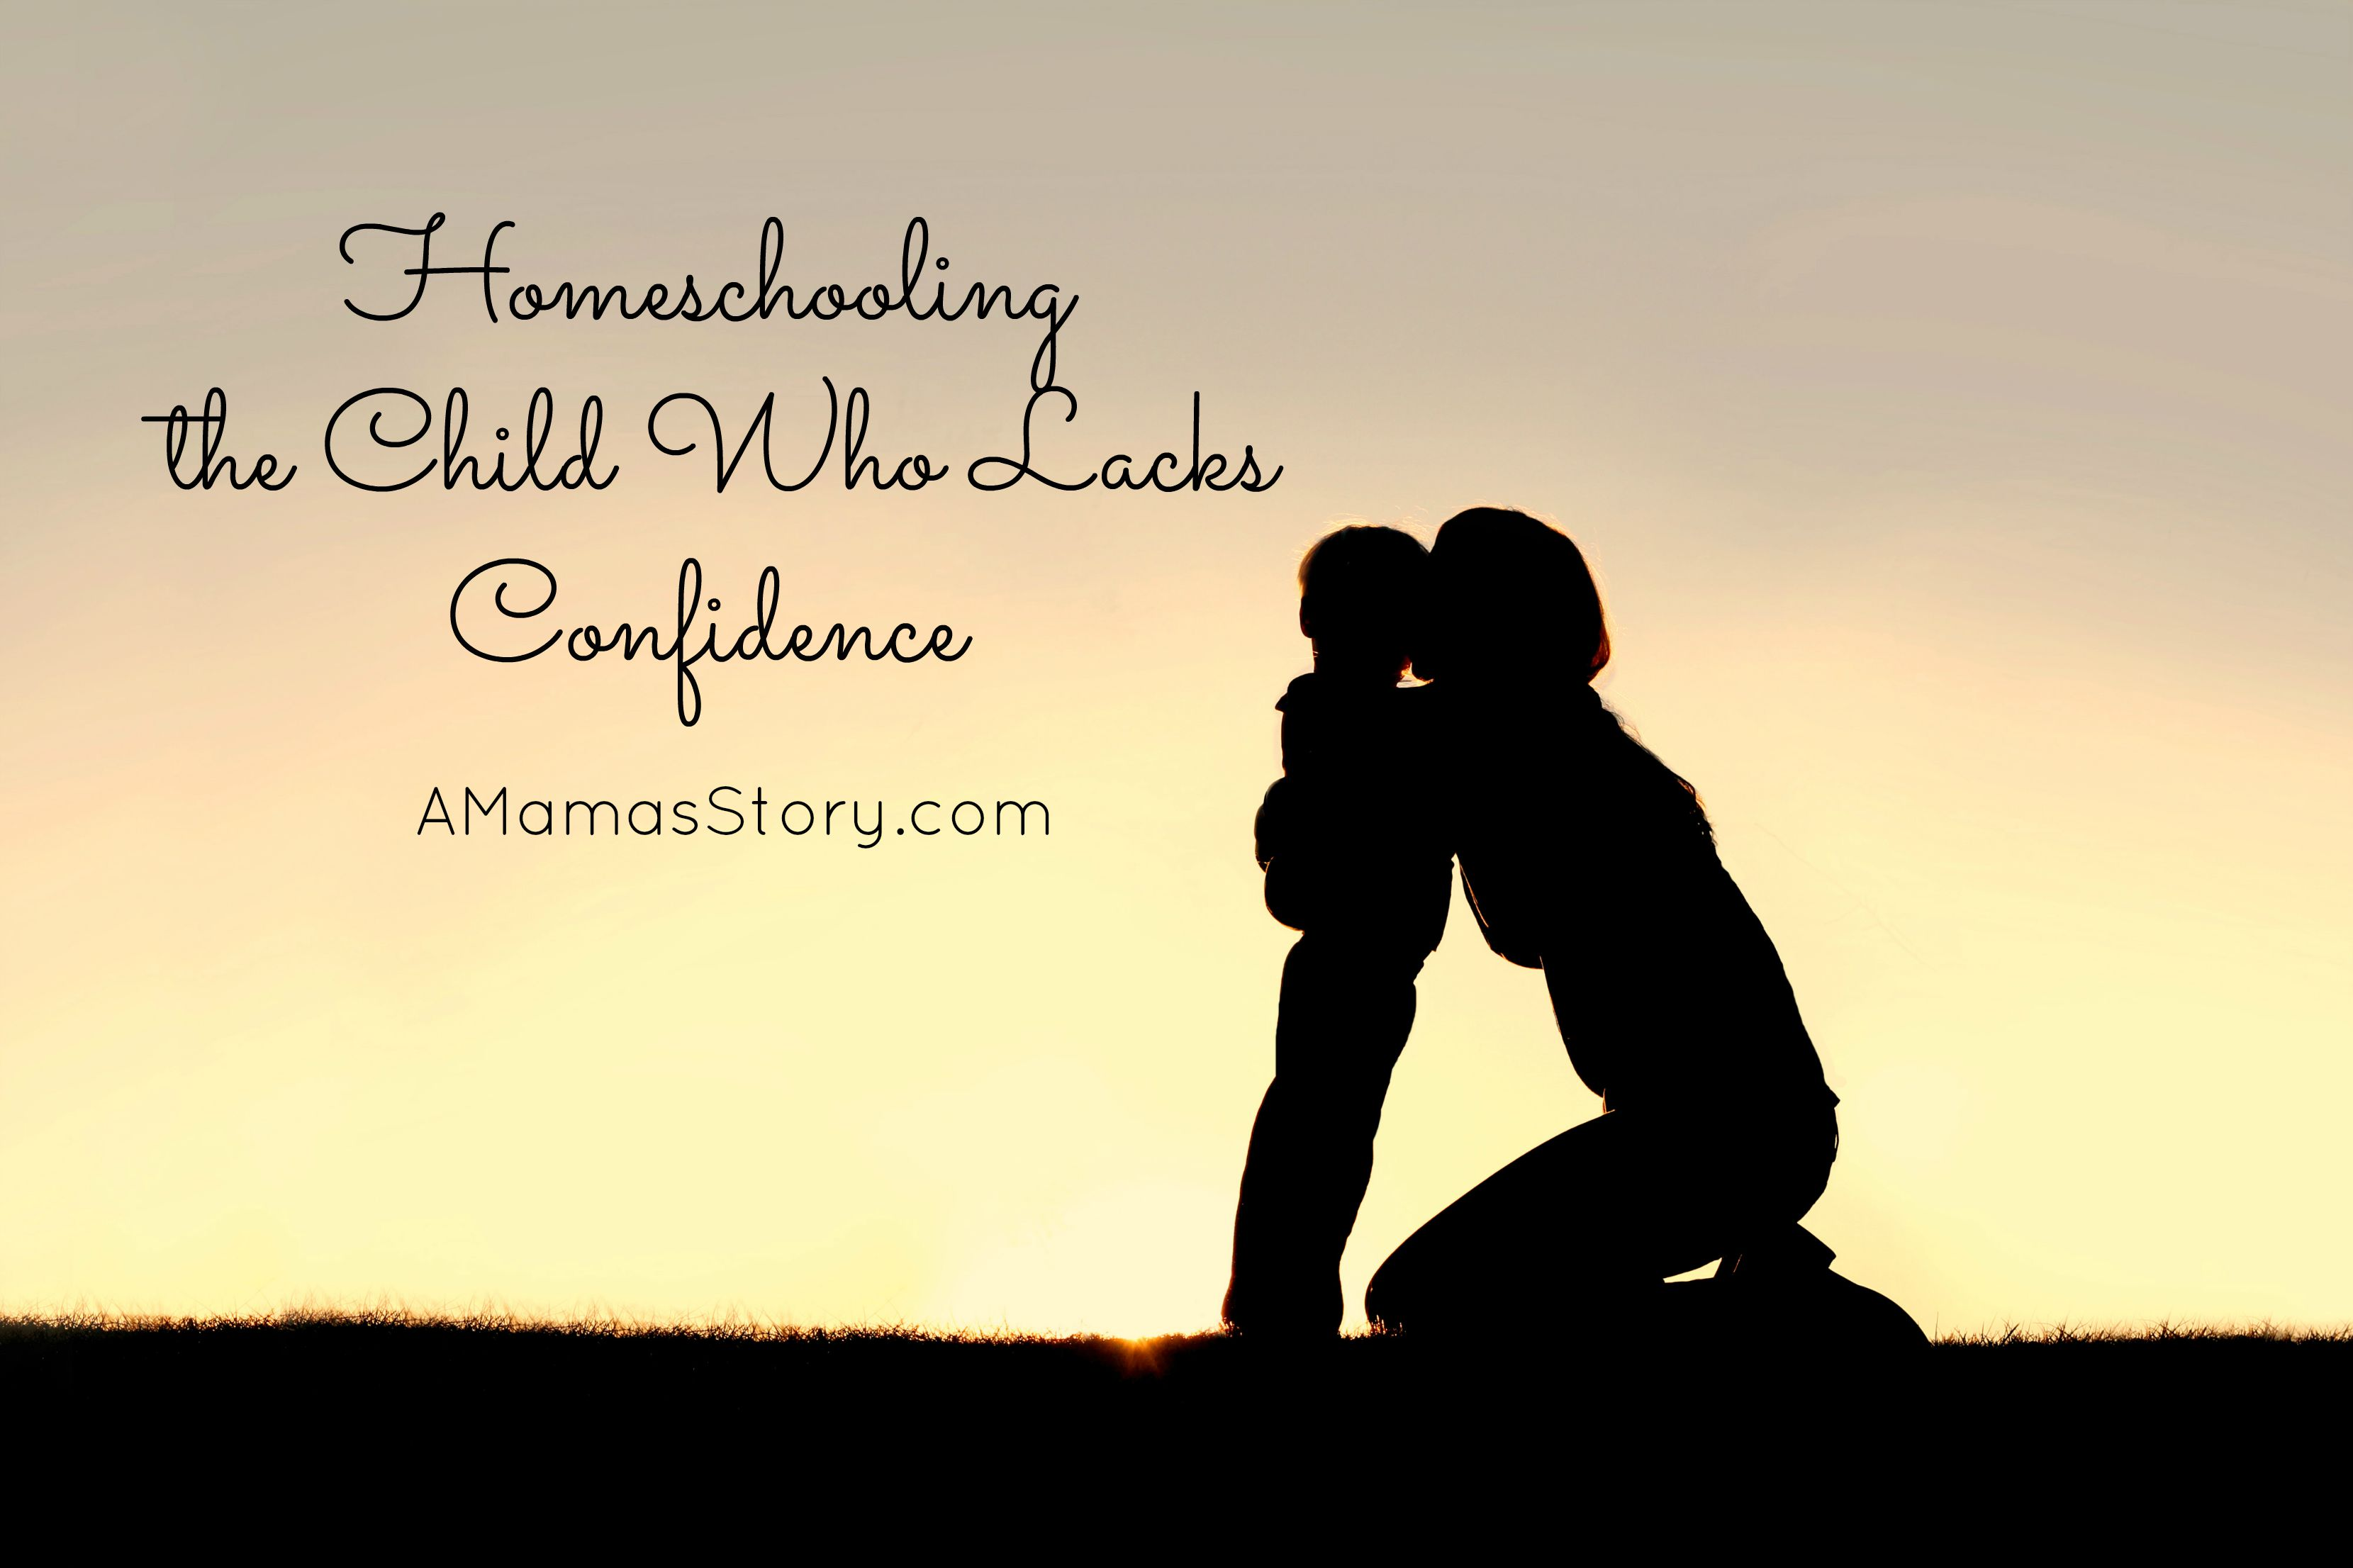 Homeschooling the Child Who Lacks Confidence